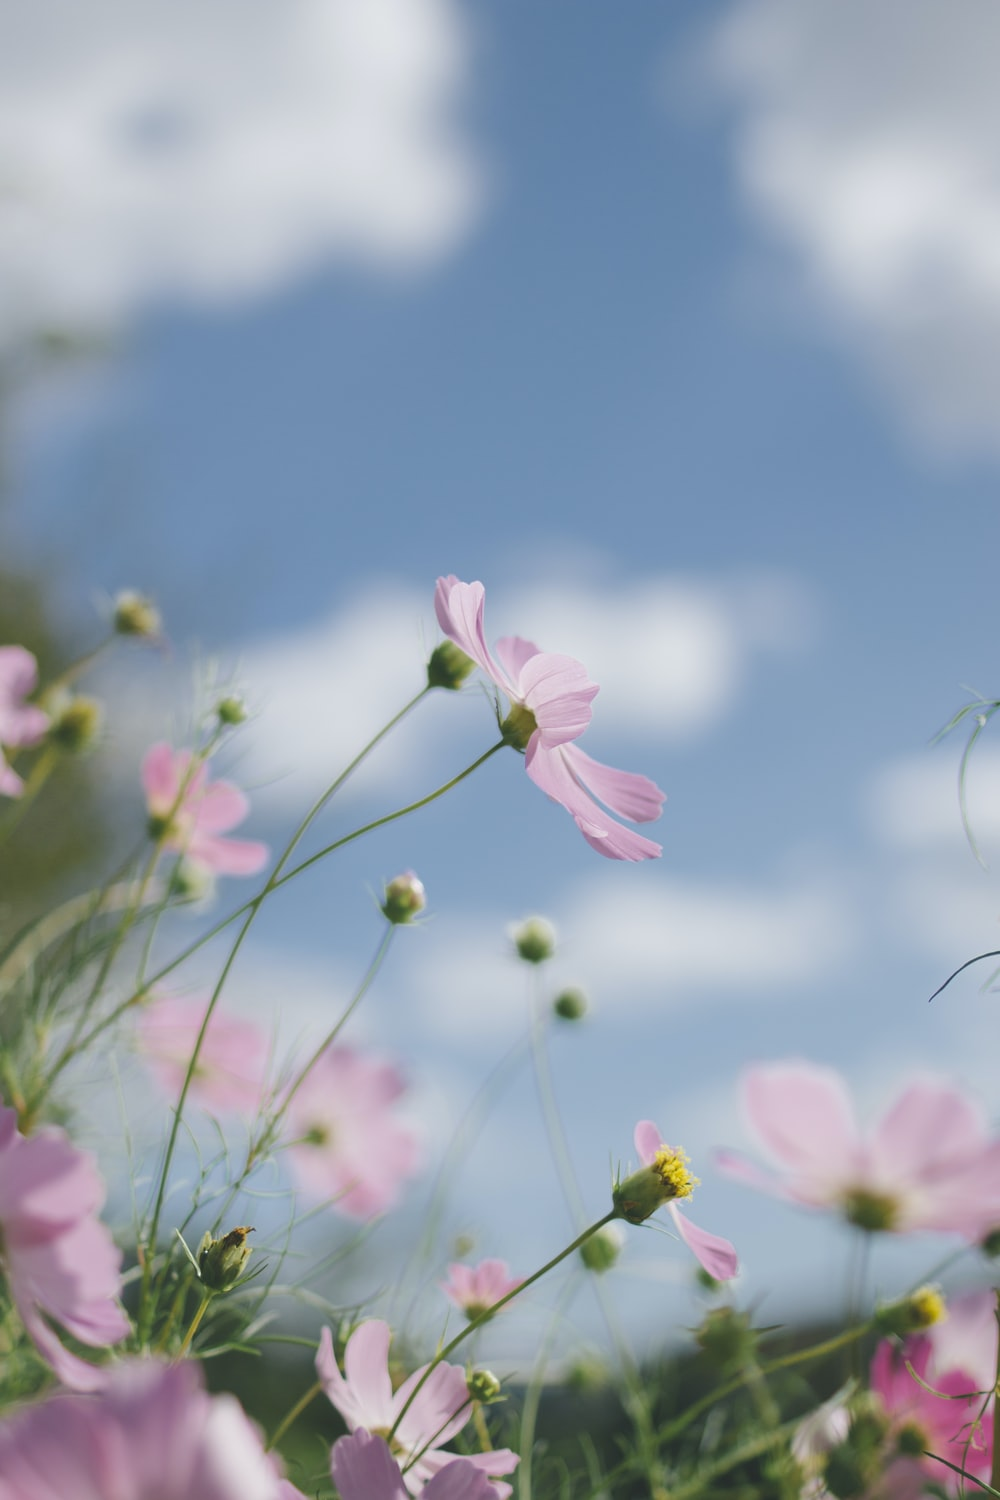 focus photography of pink flower